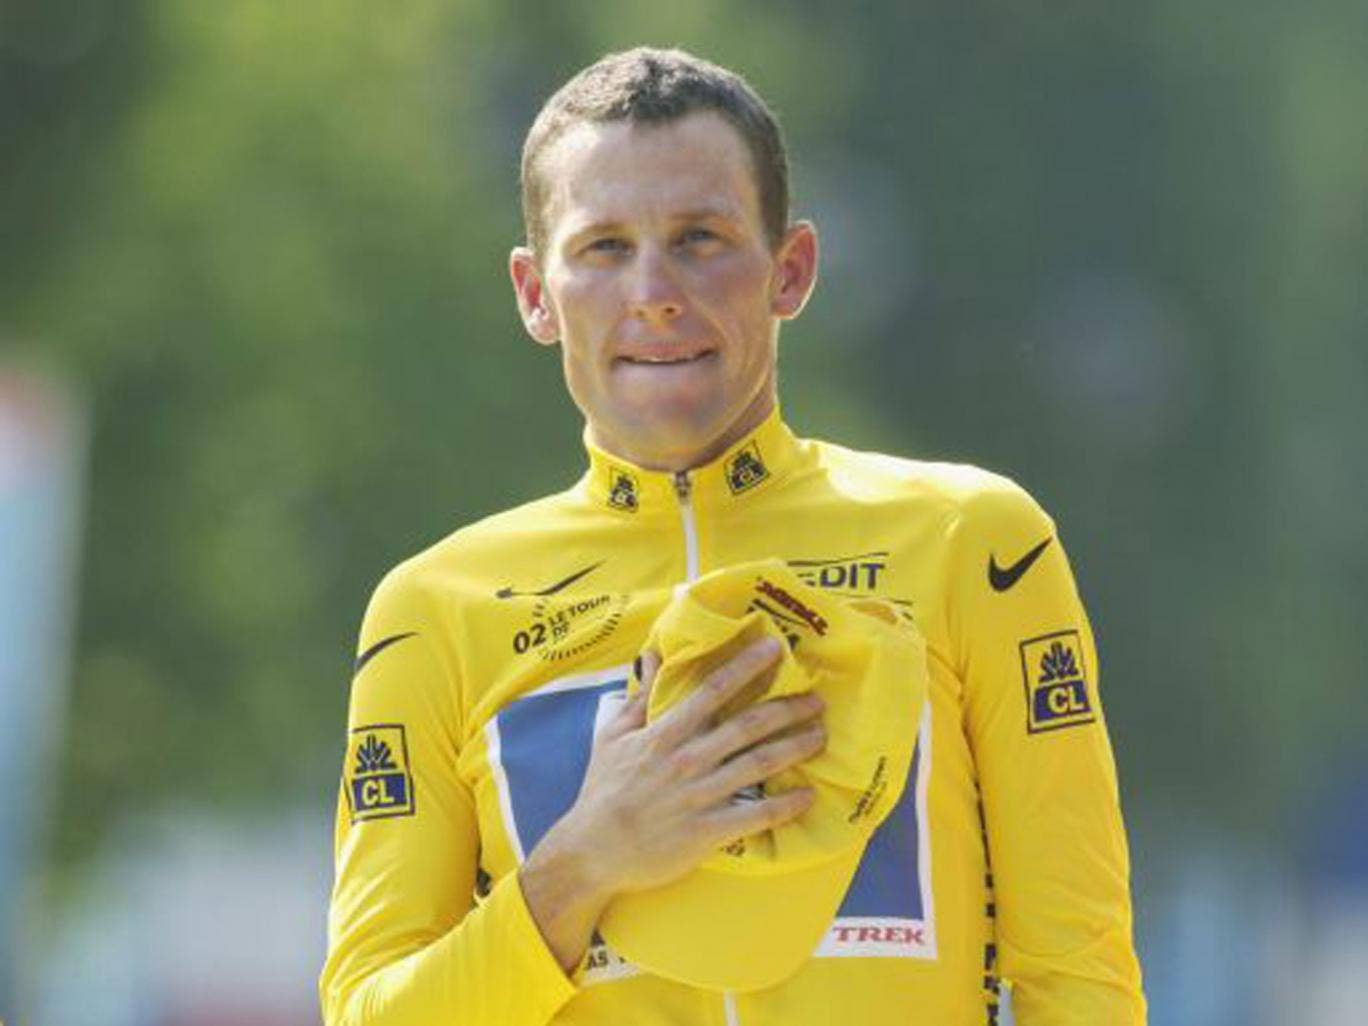 Lance Armstrong admits taking drugs for the first time but the number of gaps in his story mean that questions and condemnation are quick to follow